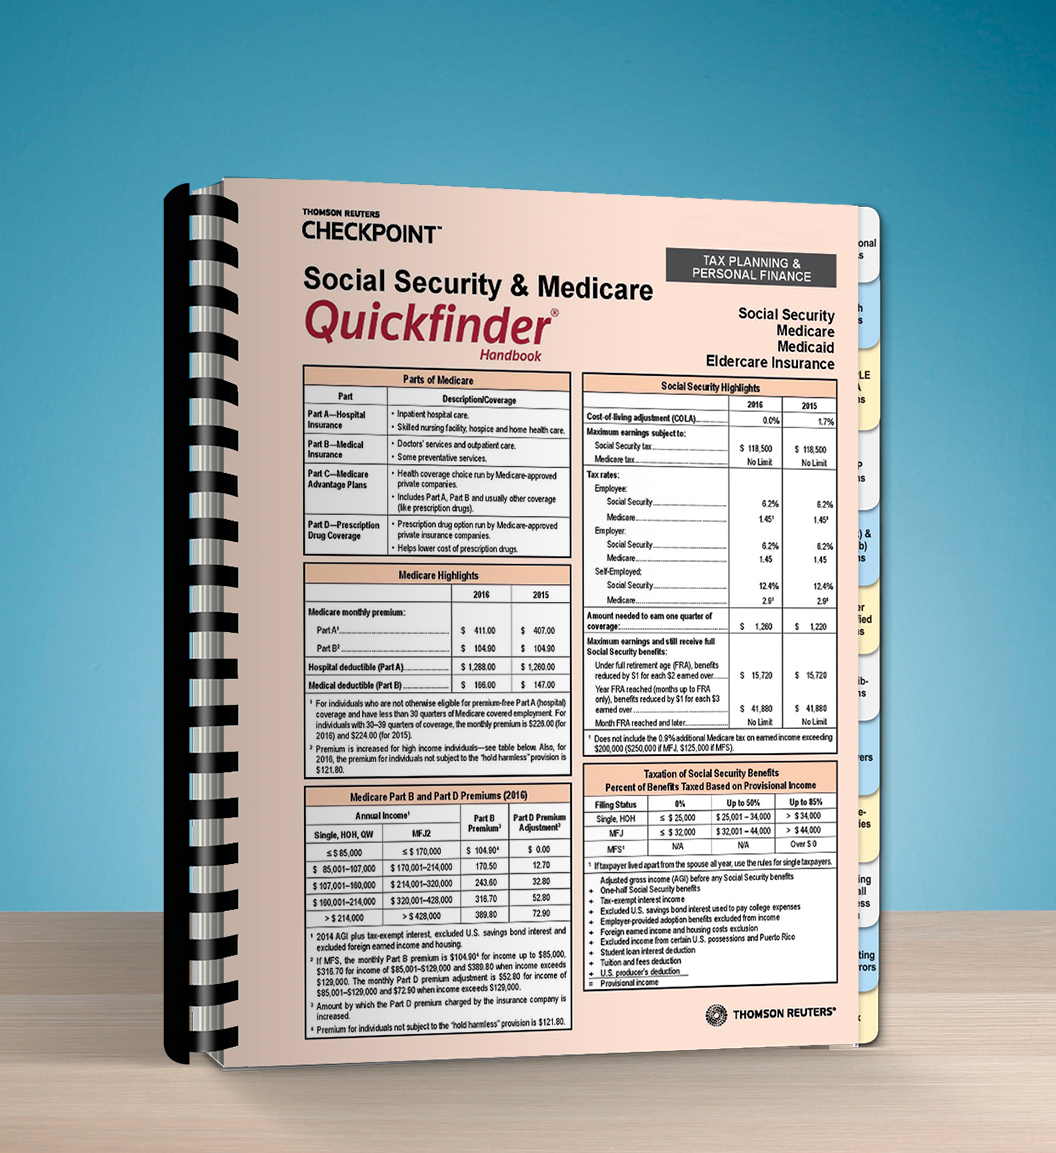 Social Security and Medicare Quickfinder Handbook (2017) - #3715